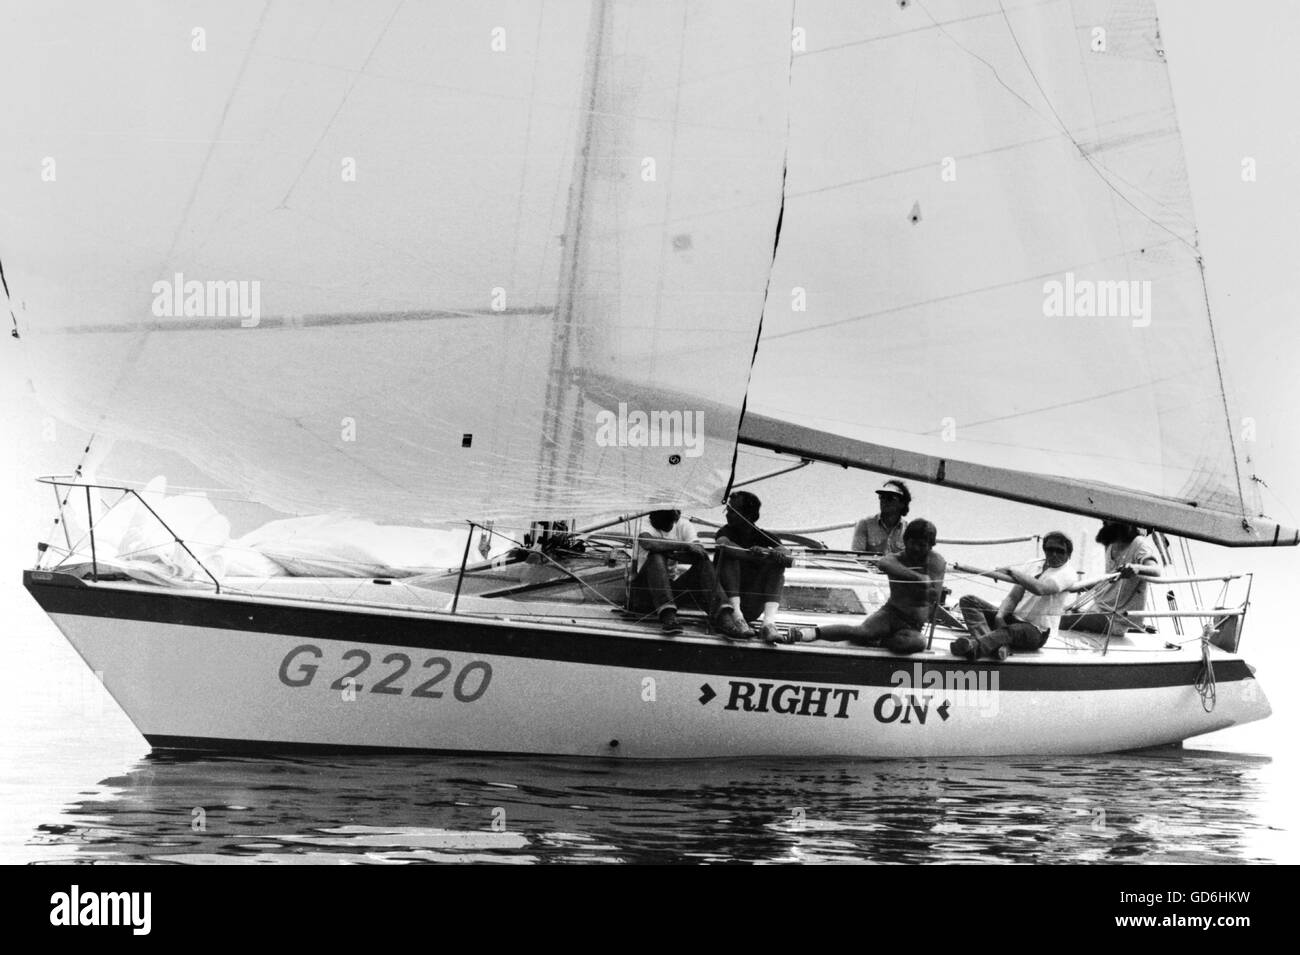 Wendt Stock Photos Images Alamy 1951 Chevy Ger For Sale Ajaxnetphoto 1983 Trieste Italy 3 4 Ton World Championships